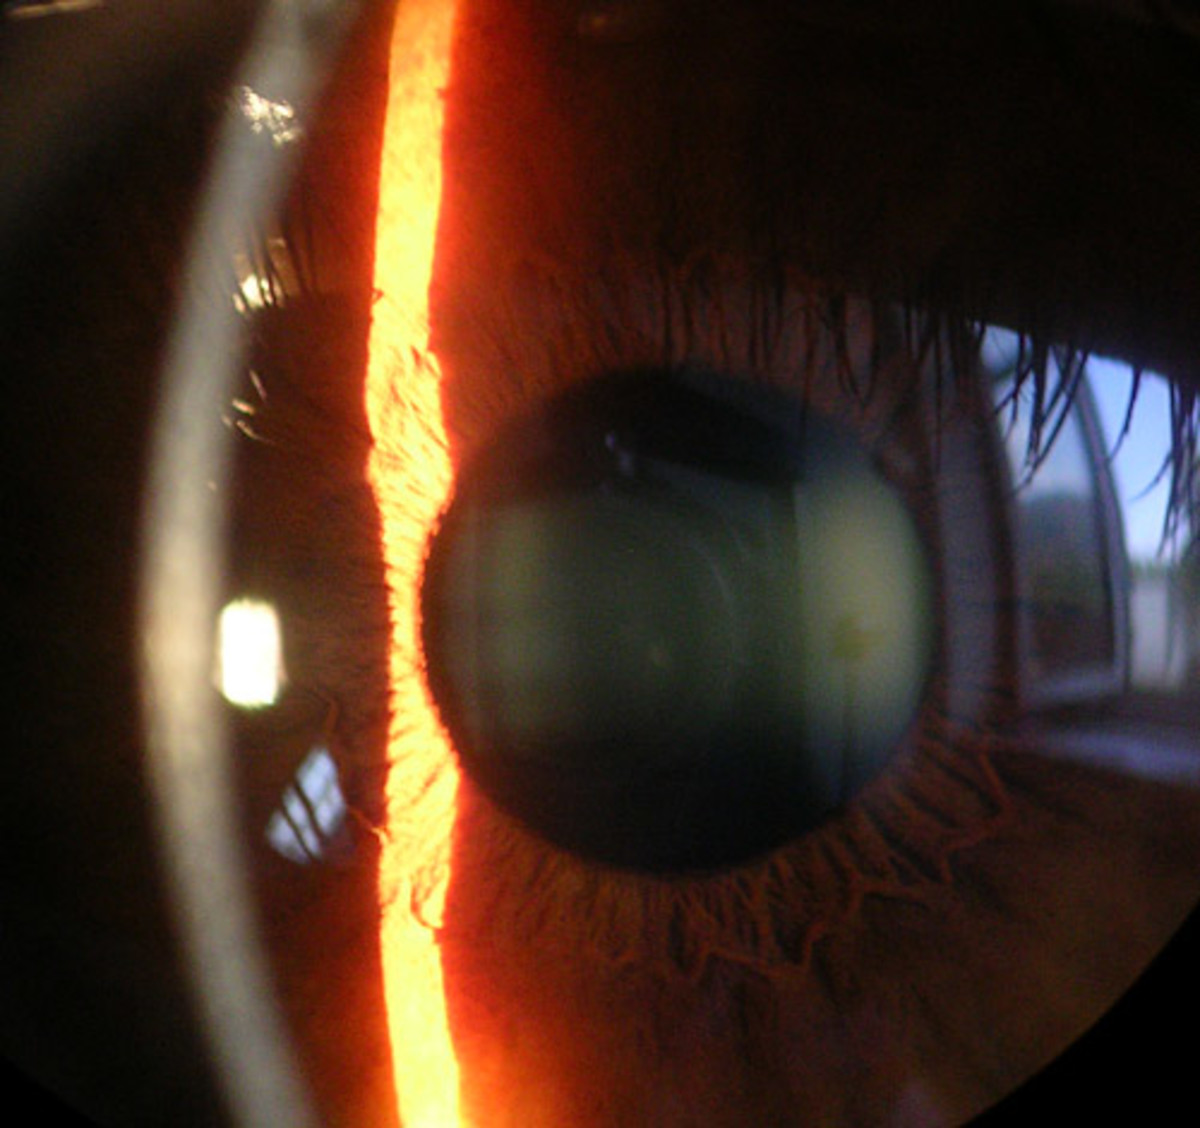 If you look closely, you can see the reflection on the cornea of the window behind the person taking the photo. This is a clear, healthy cornea.